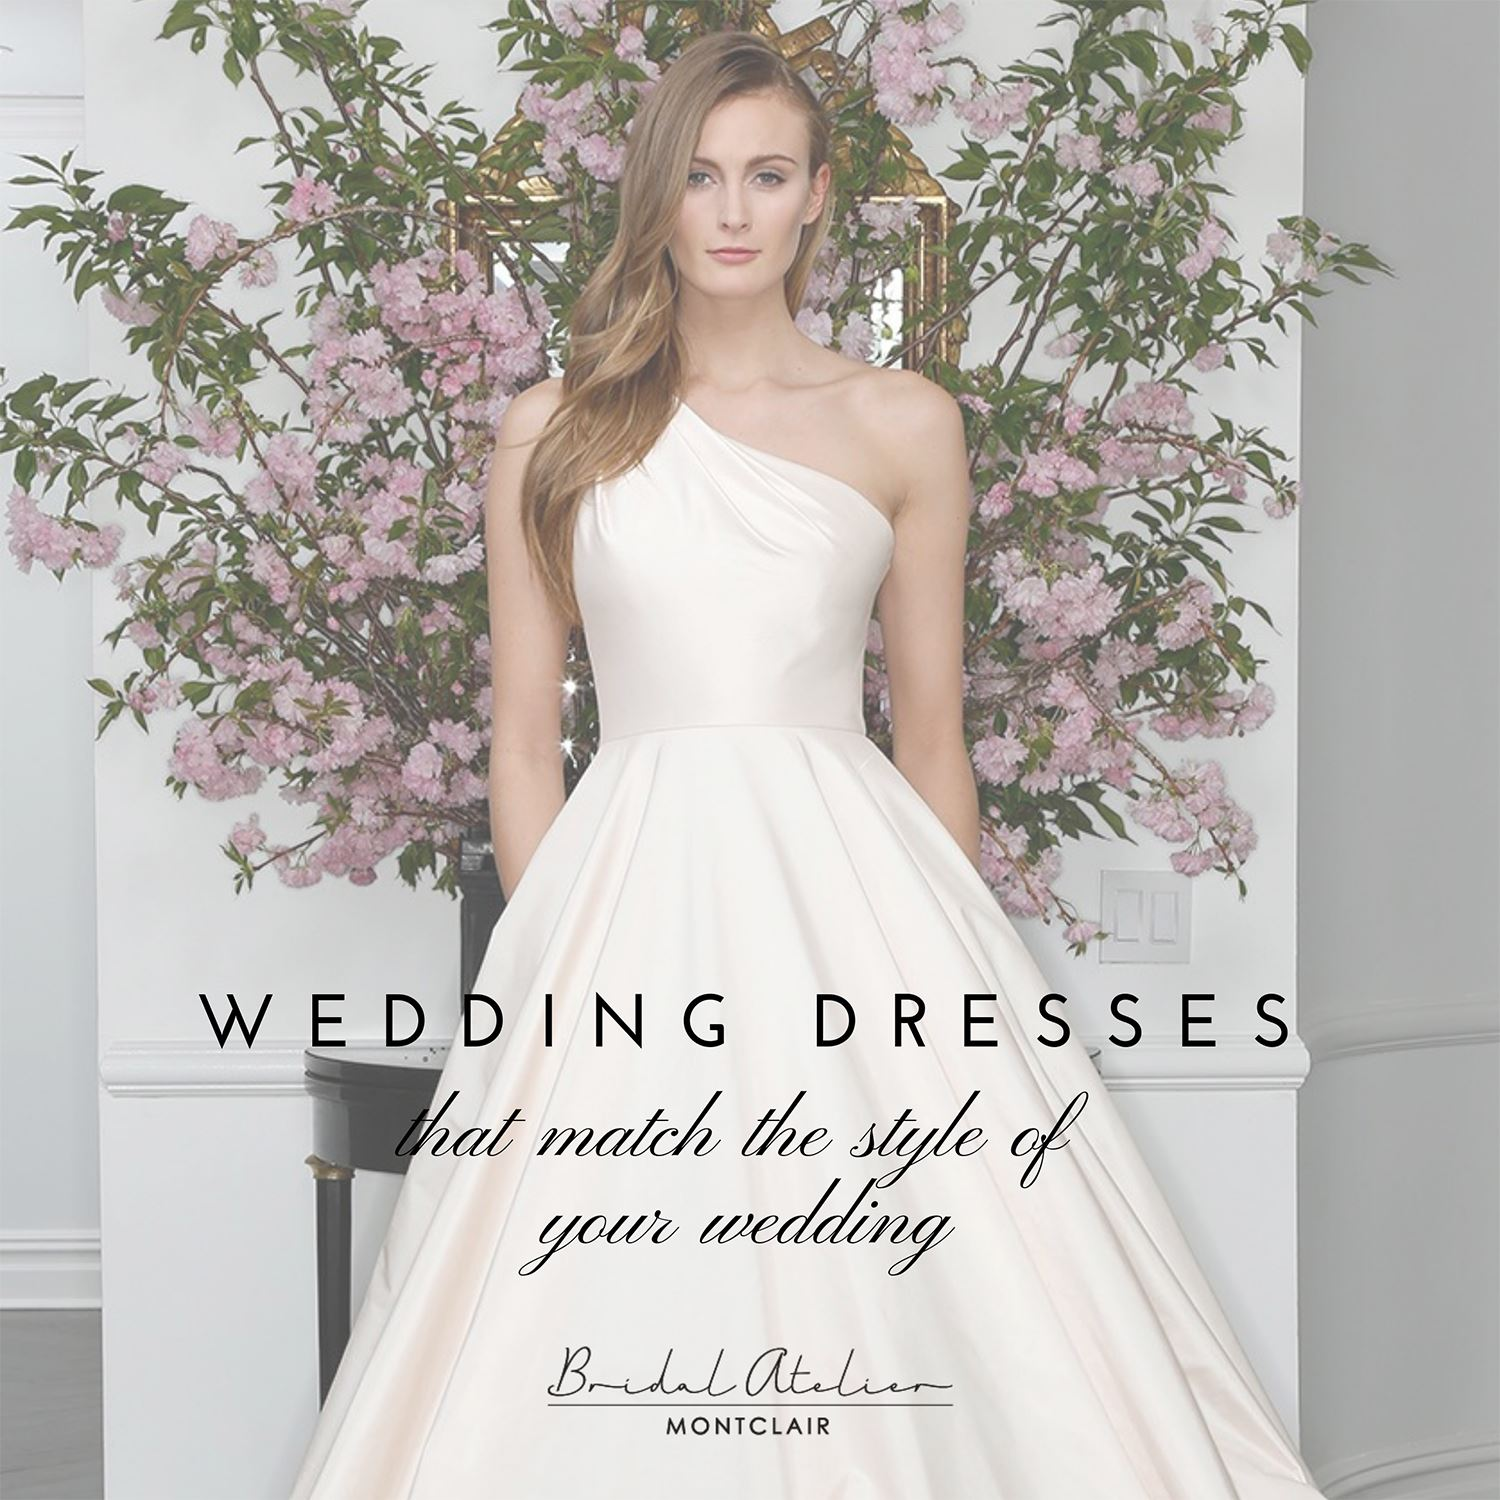 Wedding Dresses that Match the Style of Your Wedding. Desktop Image